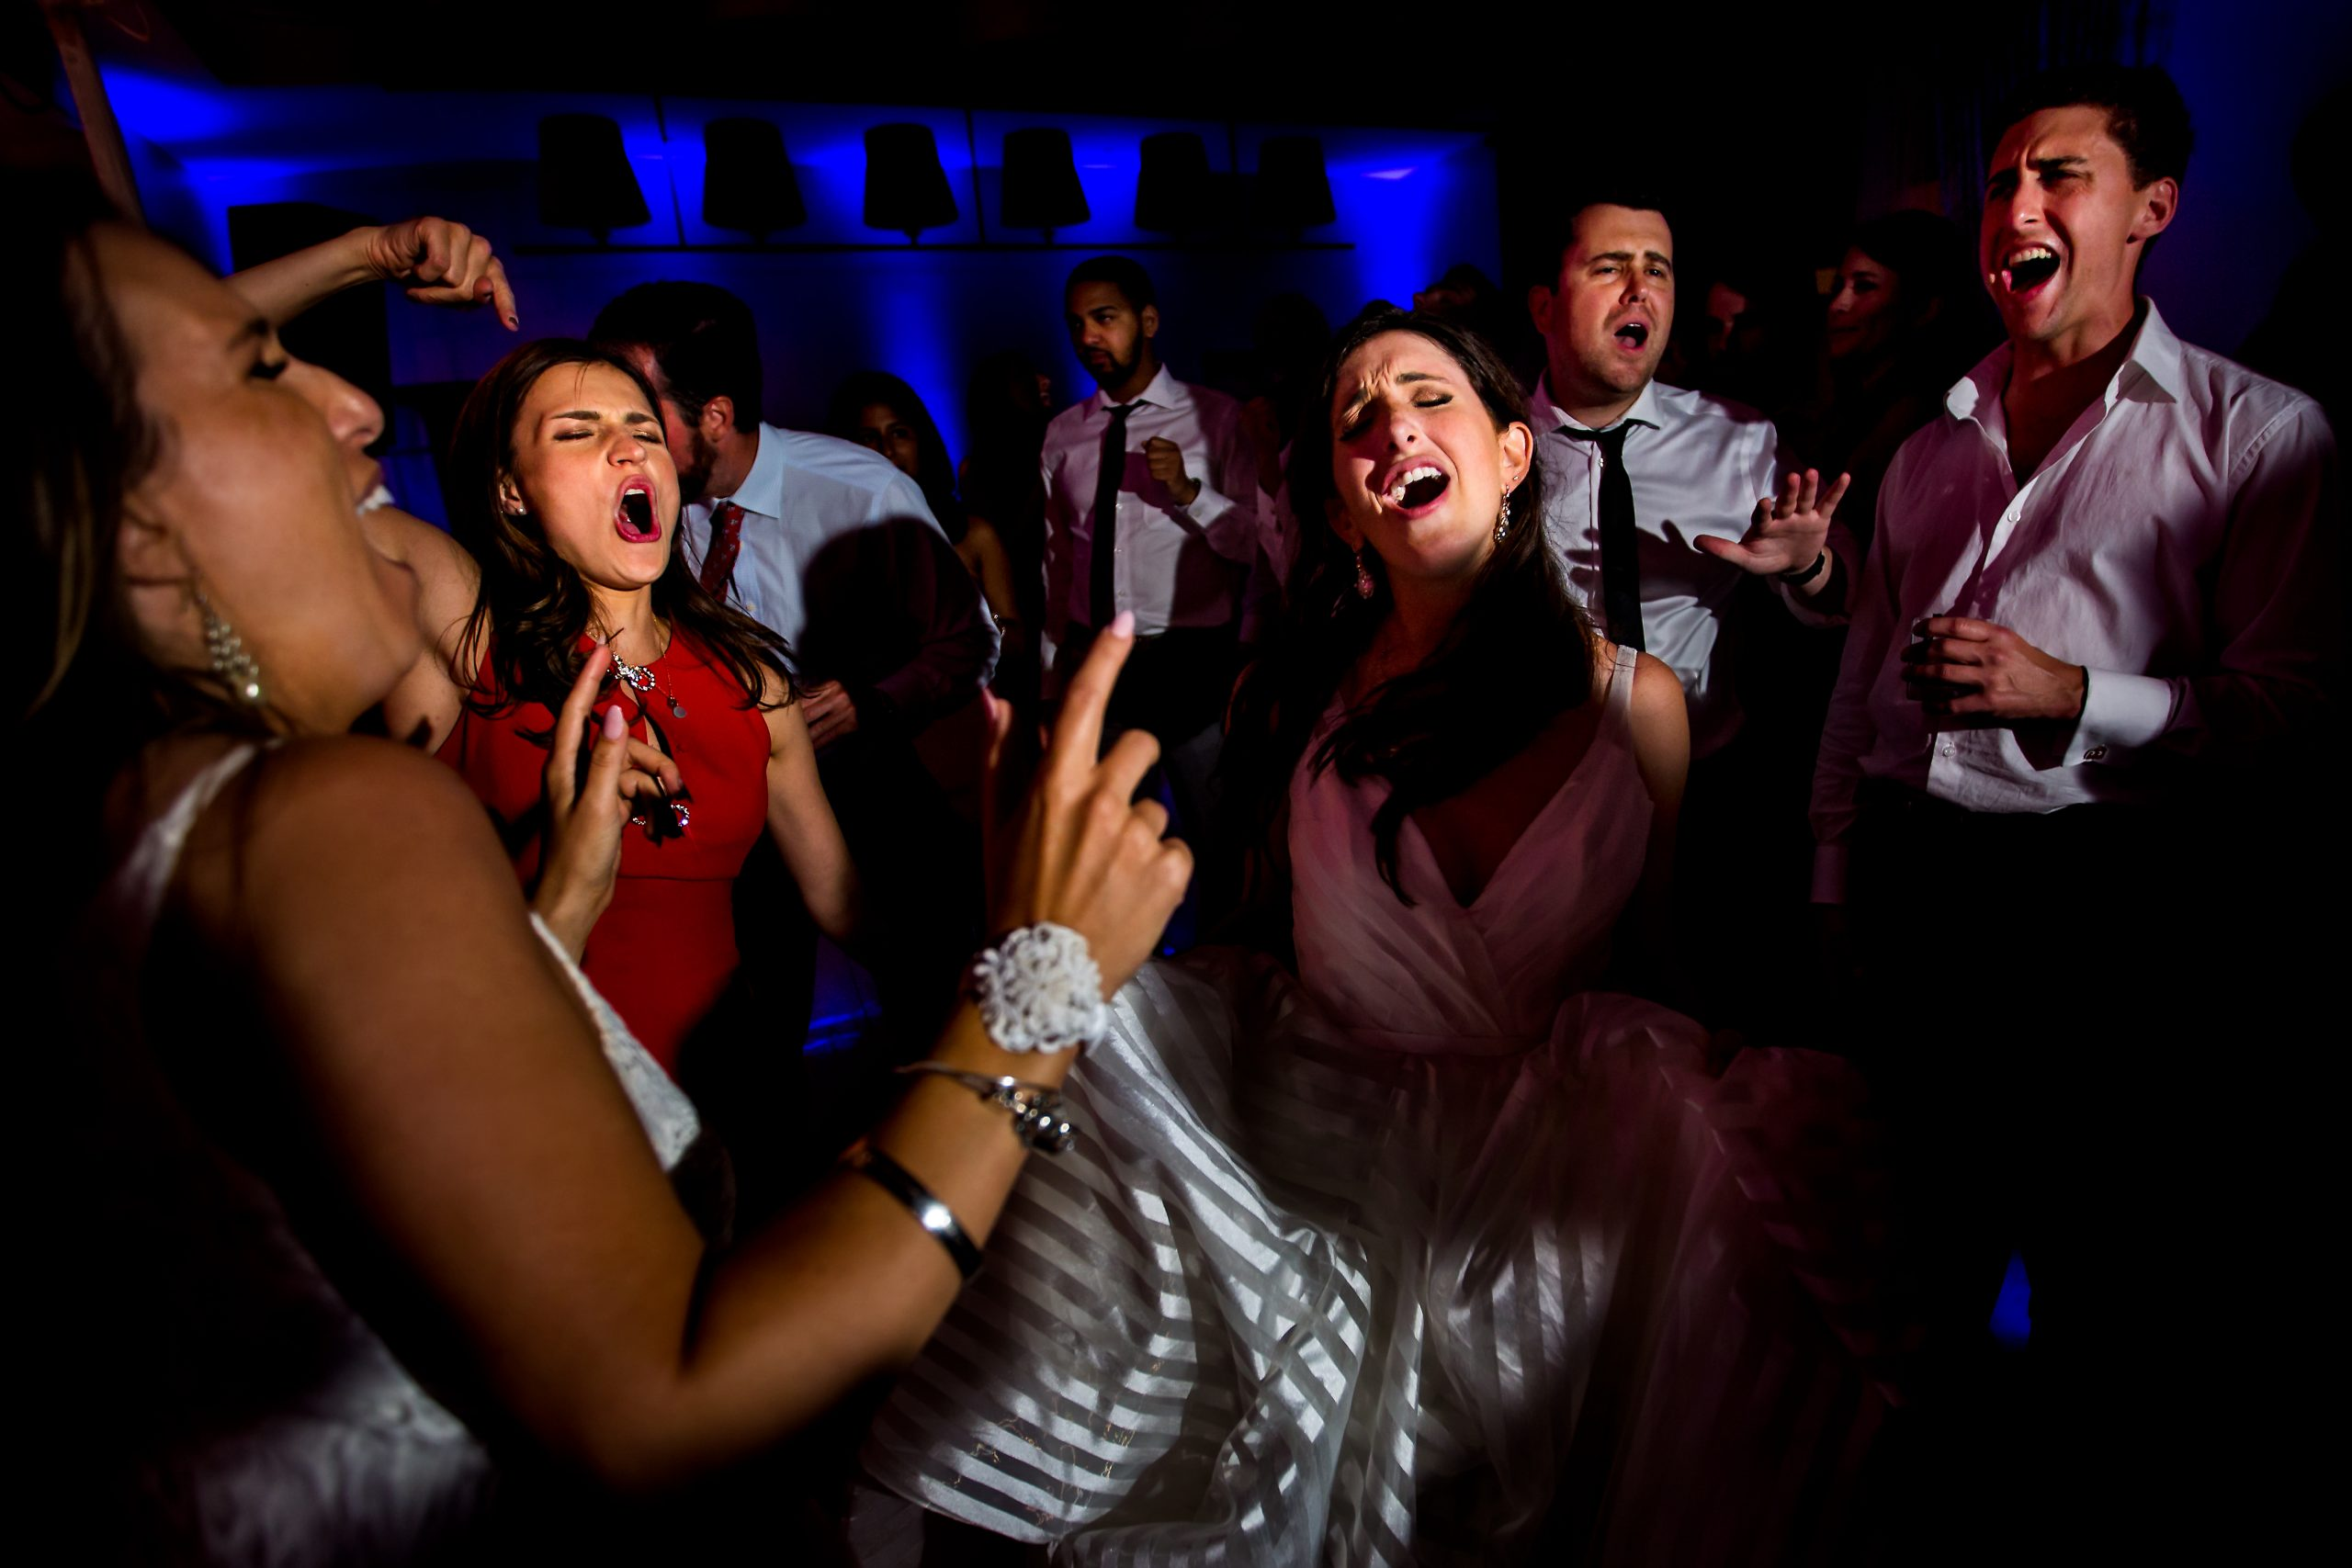 Bride dances and sings with guests